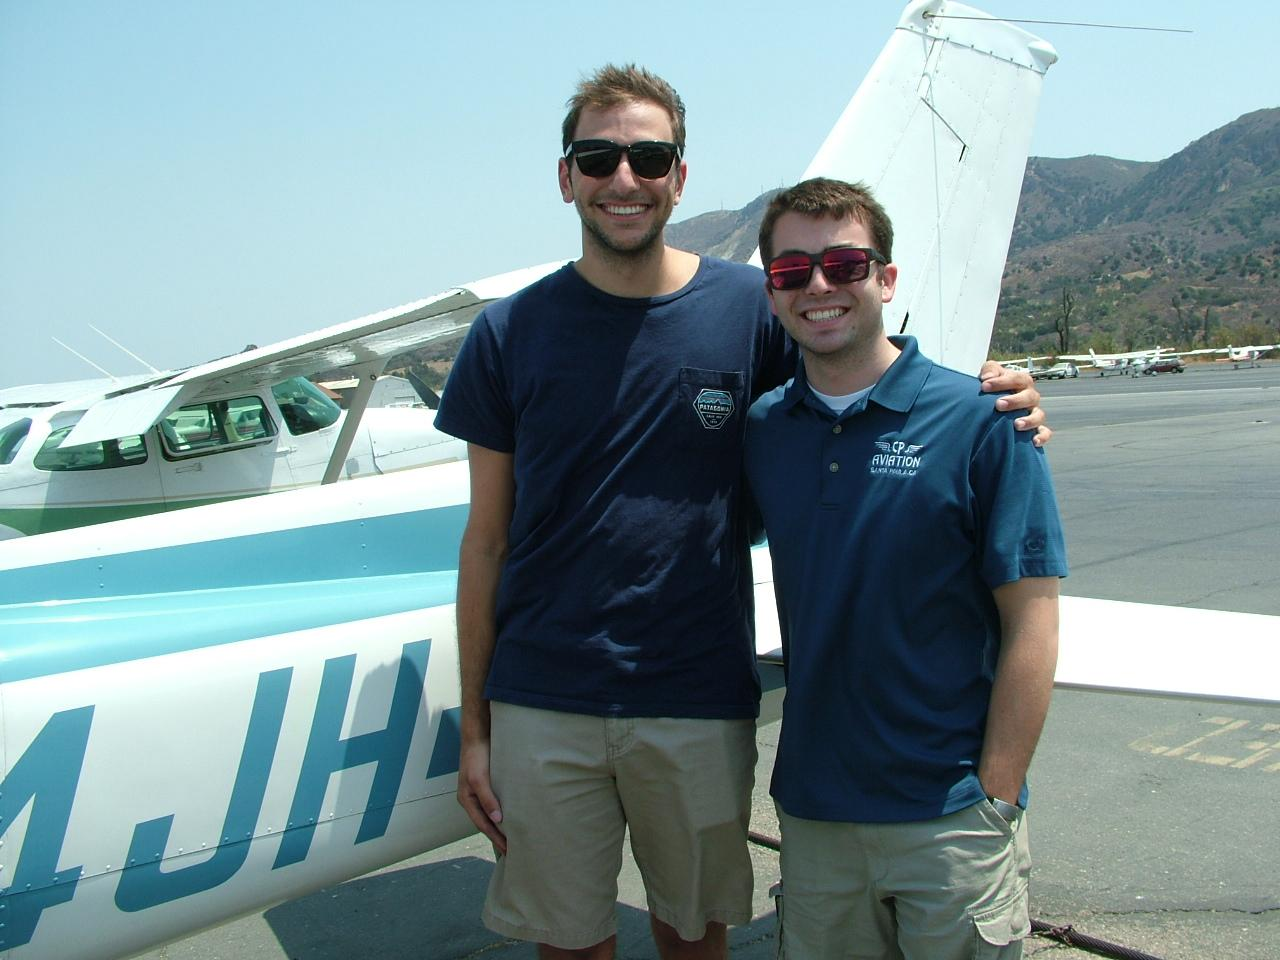 First Solo - Nick Shoemate